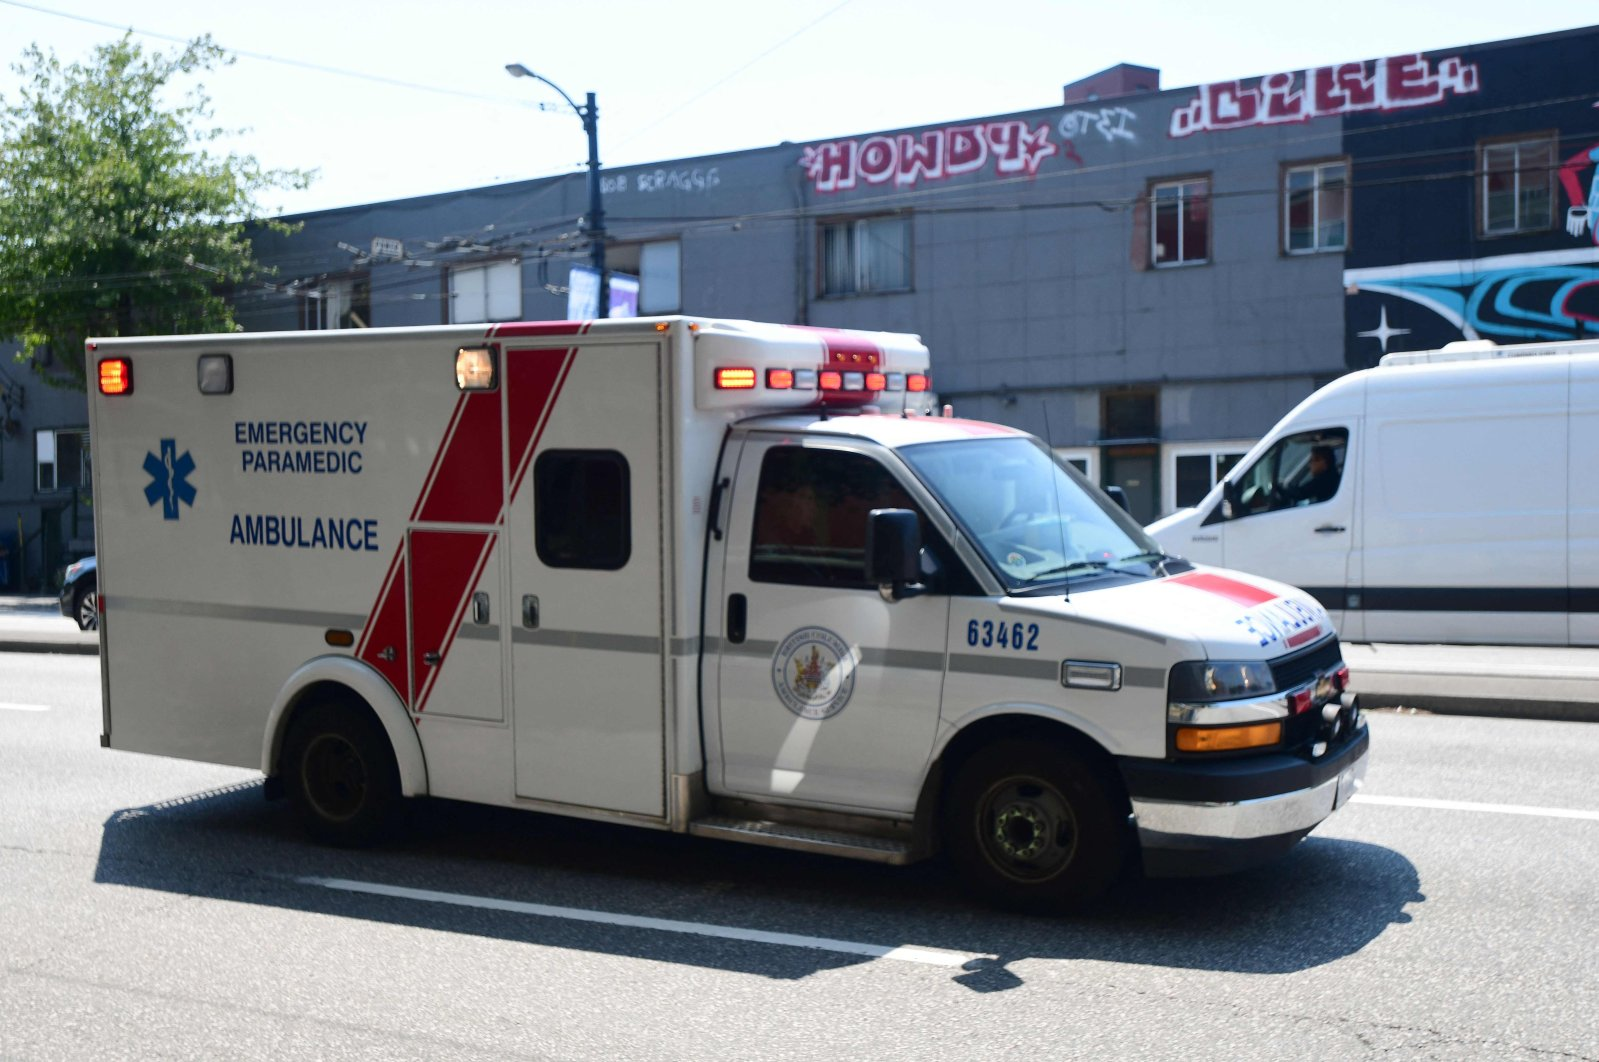 An ambulance is seen during the extreme hot weather in Vancouver, British Columbia, Canada, June 30, 2021. (AFP Photo)